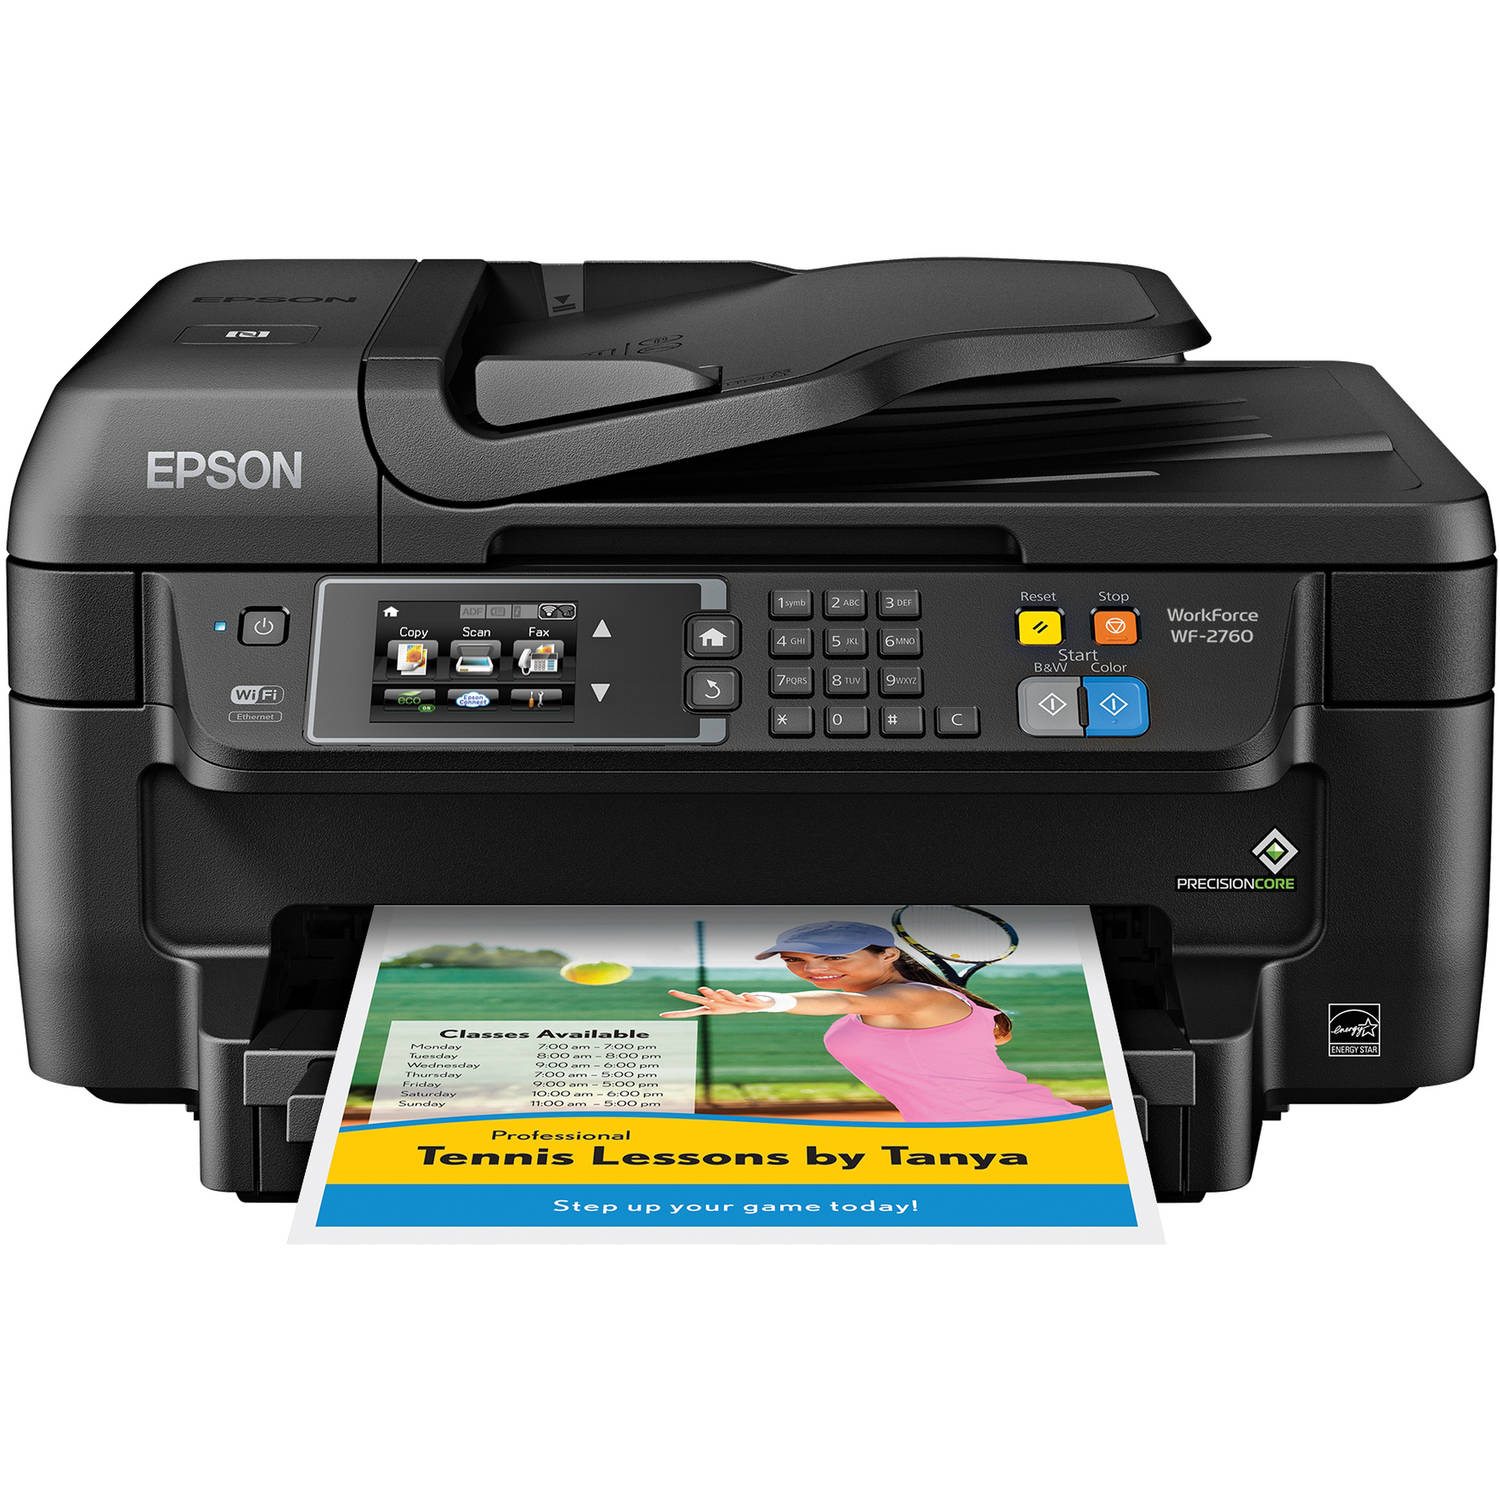 Epson WorkForce WF-2760 All-in-One Wireless Color Printer/Copier/Scanner/Fax Machine